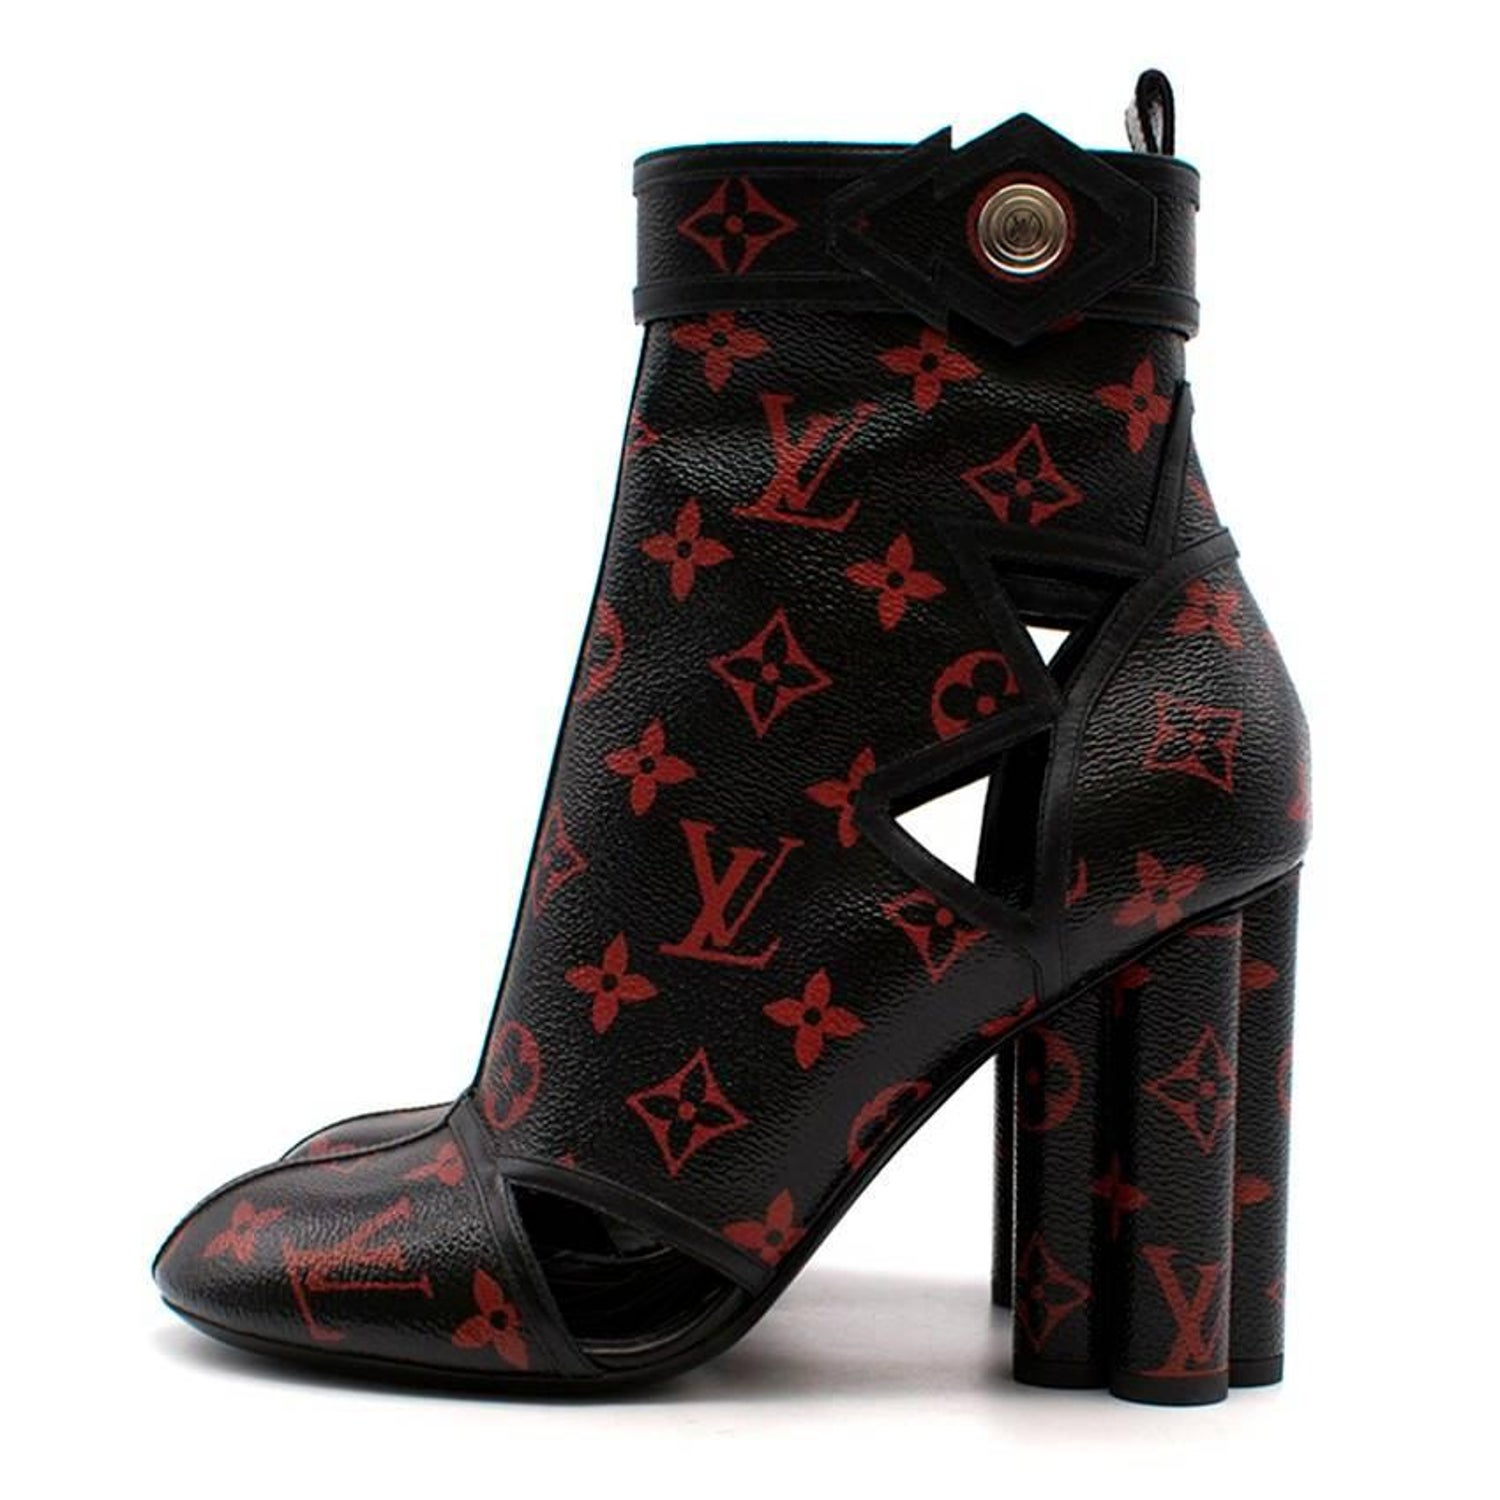 ecd8510b0e874 Louis Vuitton Black and Red Monogram Logomania Boots For Sale at 1stdibs